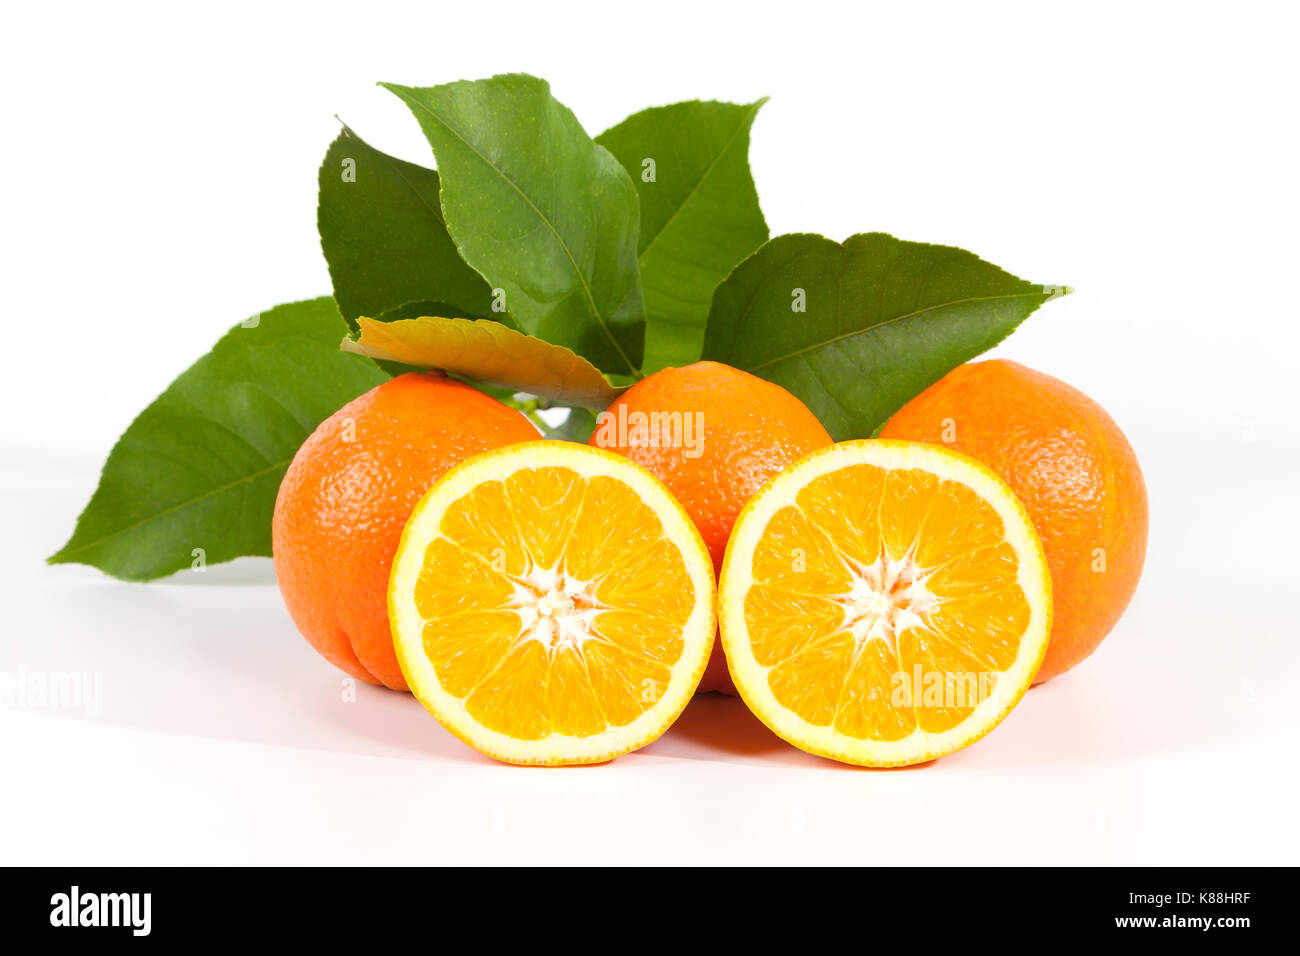 Oranges on white background. - Stock Image